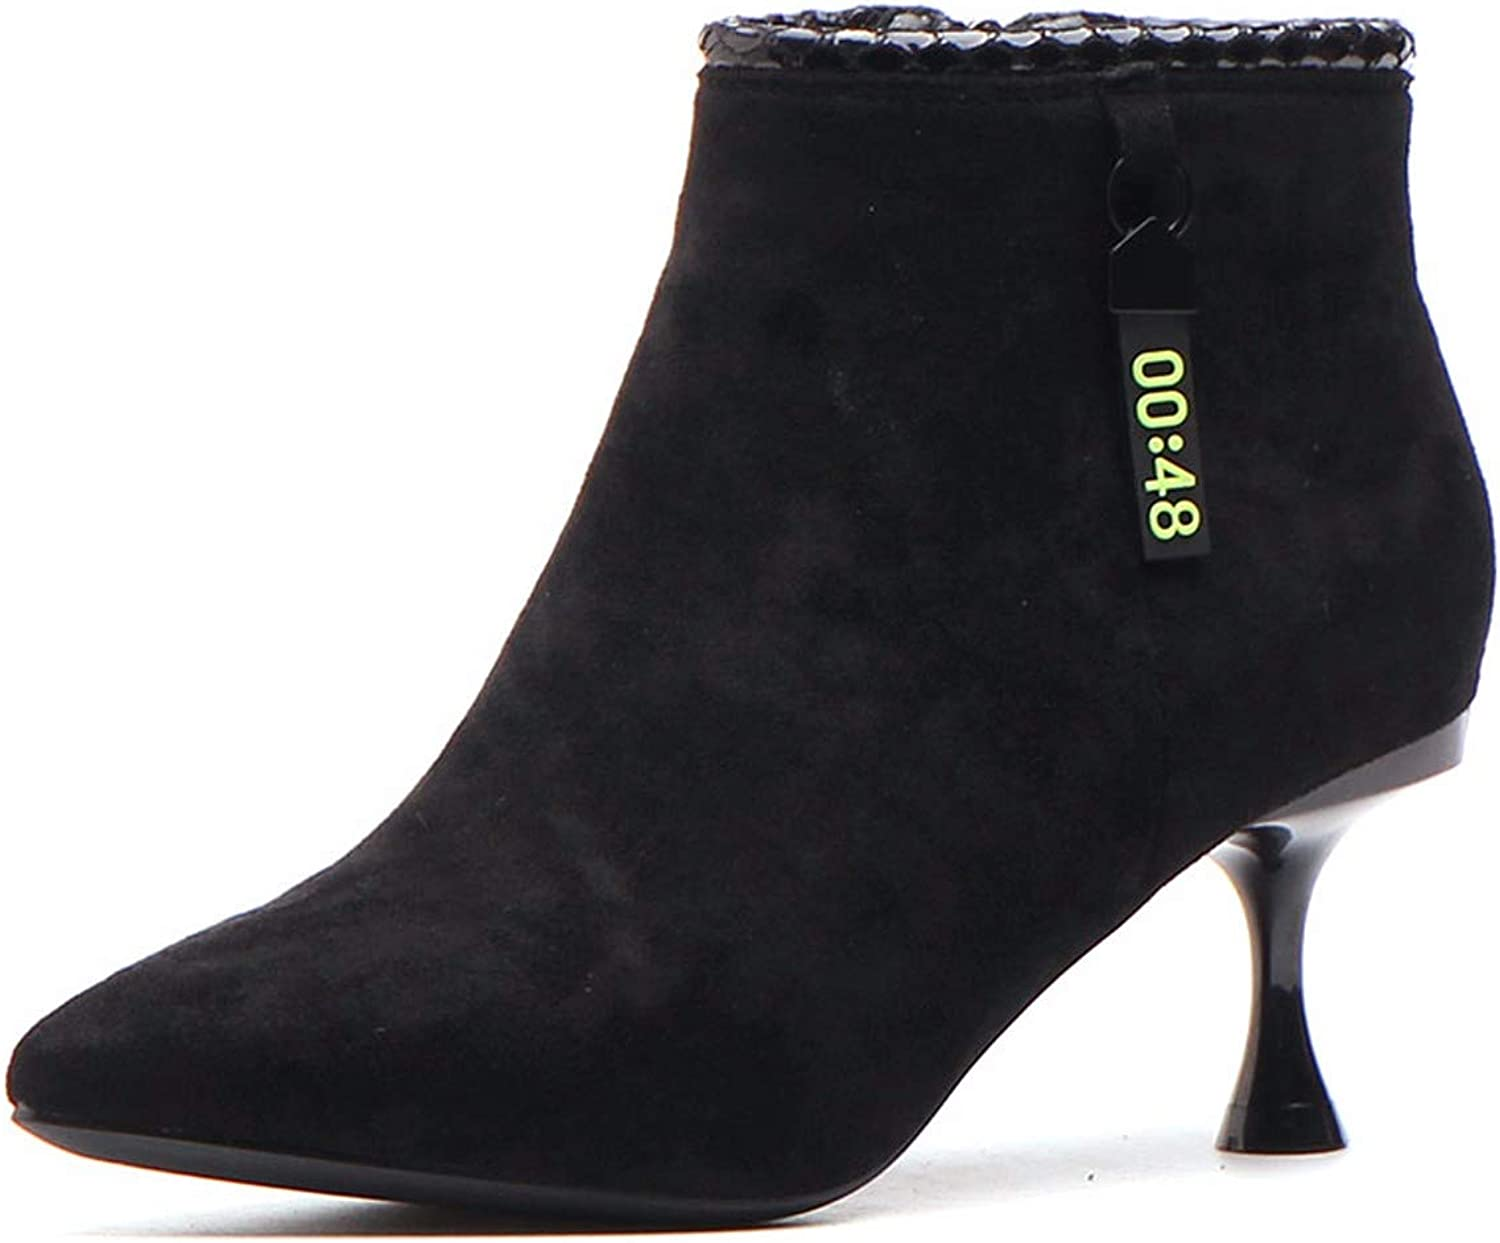 SFSYDDY Popular shoes Black Martin Boots with High 6Cm Thin Heel Small Heel Wild Short Retro Short Boots.